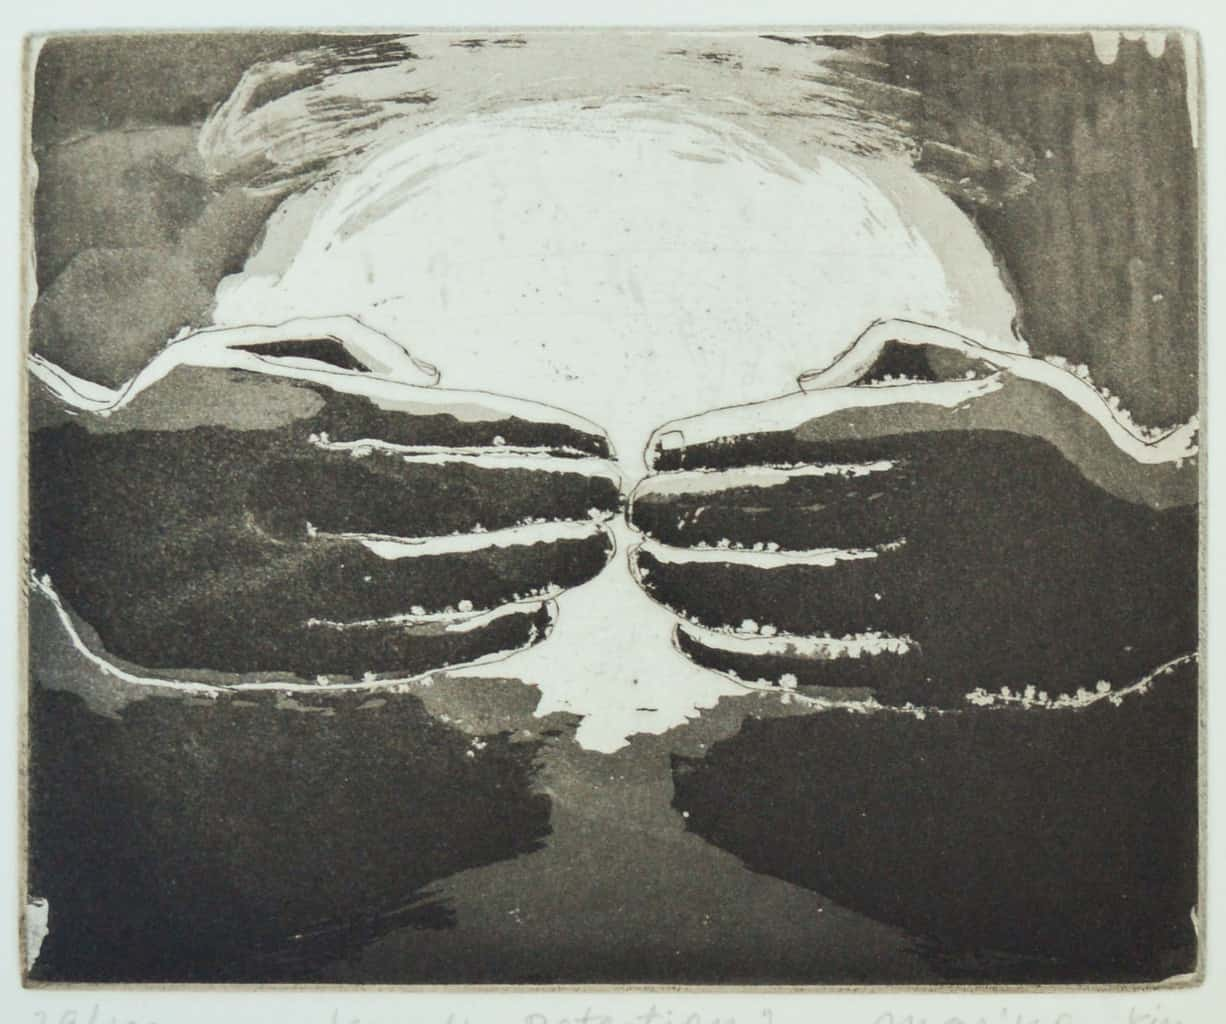 """""""Protection"""" - image from the """"Hands"""" series featuring various stances of gesturing hands. Original print etching by painter-printmaker Marina Kim"""